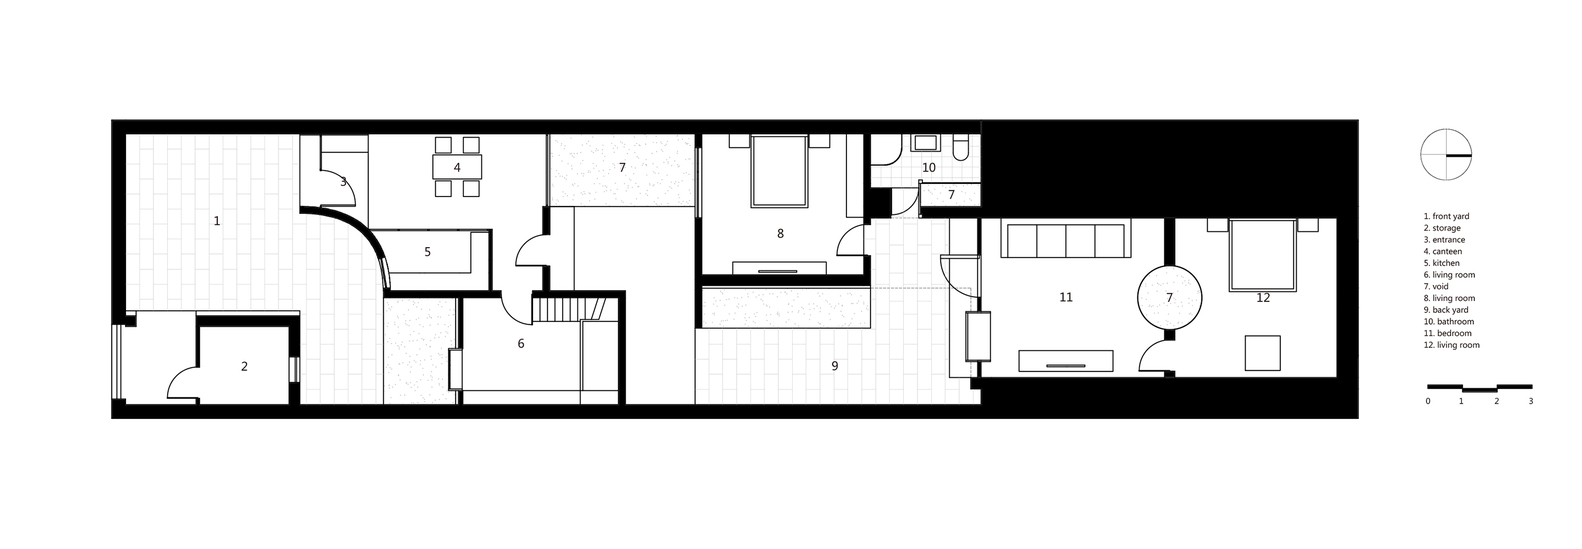 cave house in loess plateau,plan